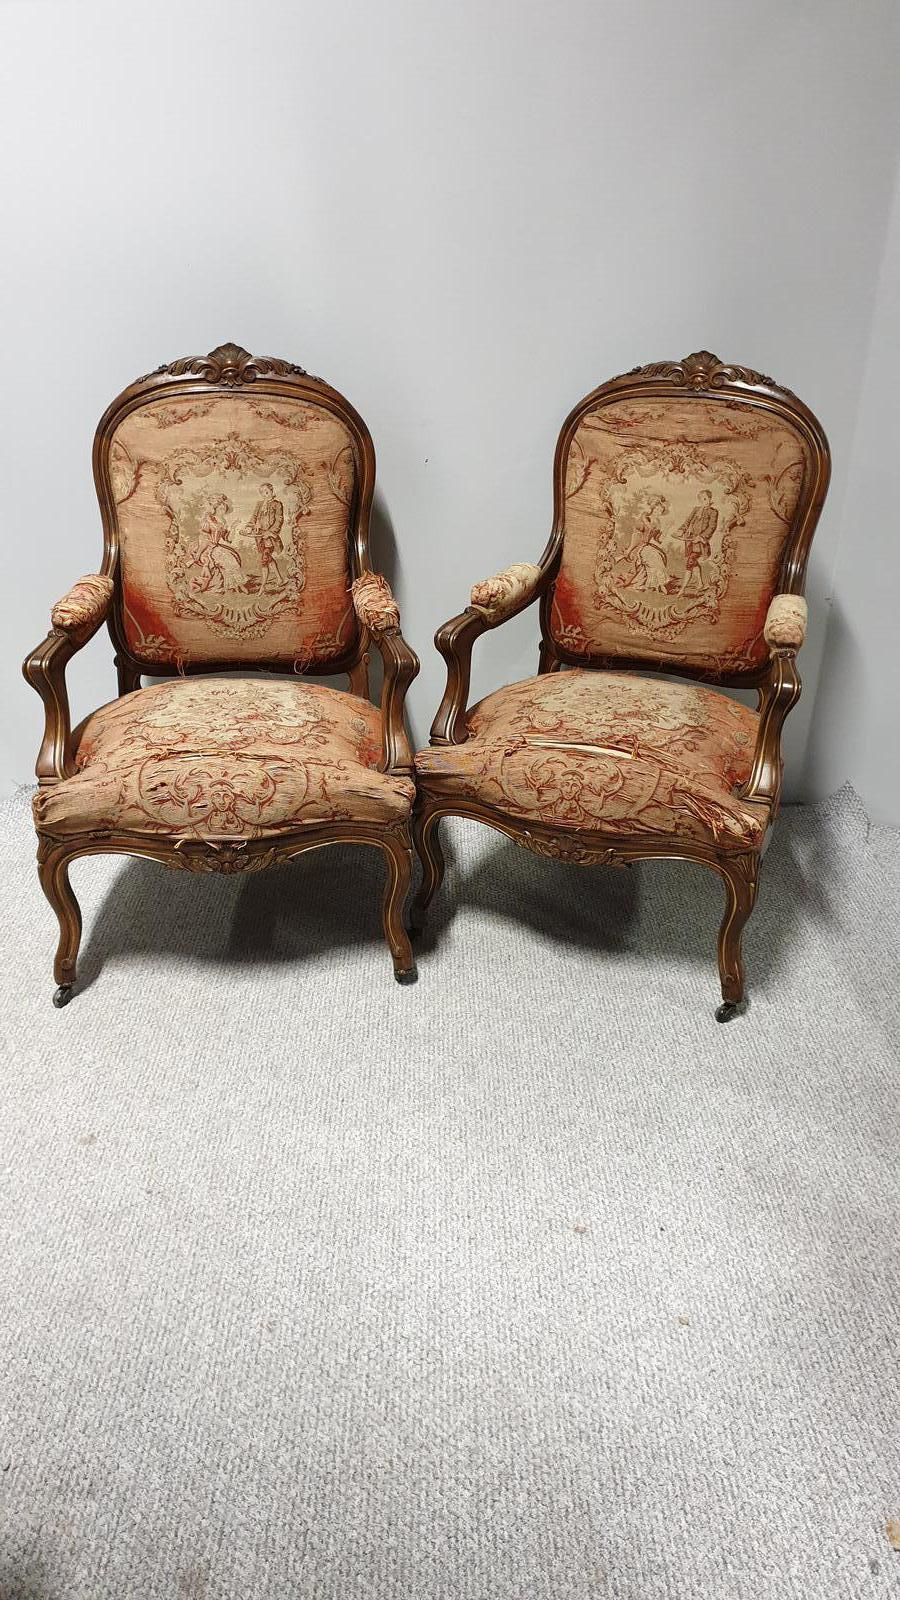 Pair of French Walnut Country House Fauteuil Armchairs (1 of 1)